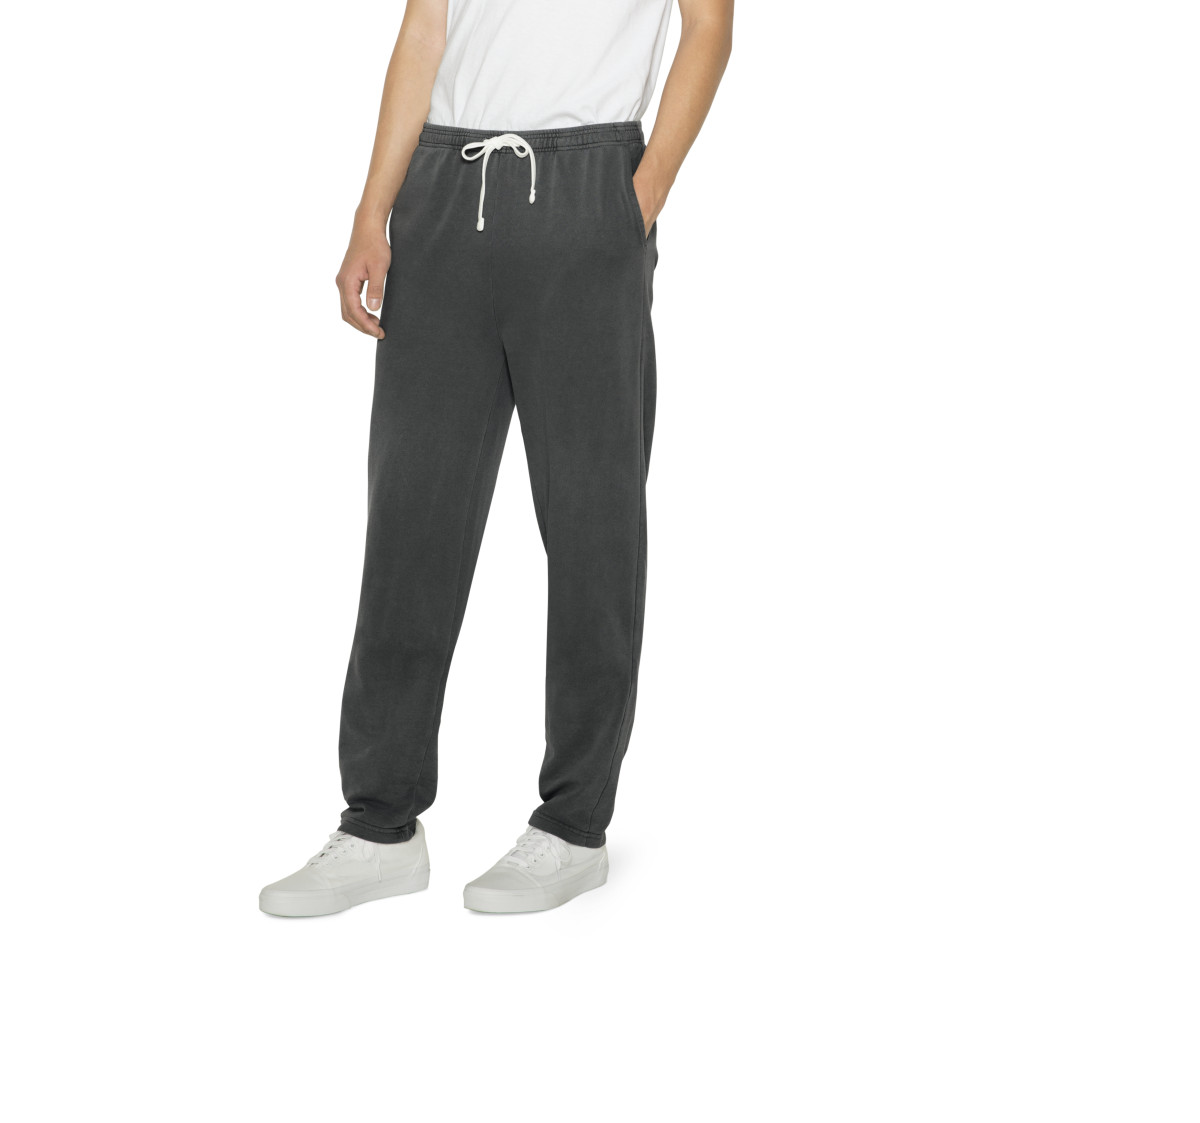 American Apparel French Terry Pant